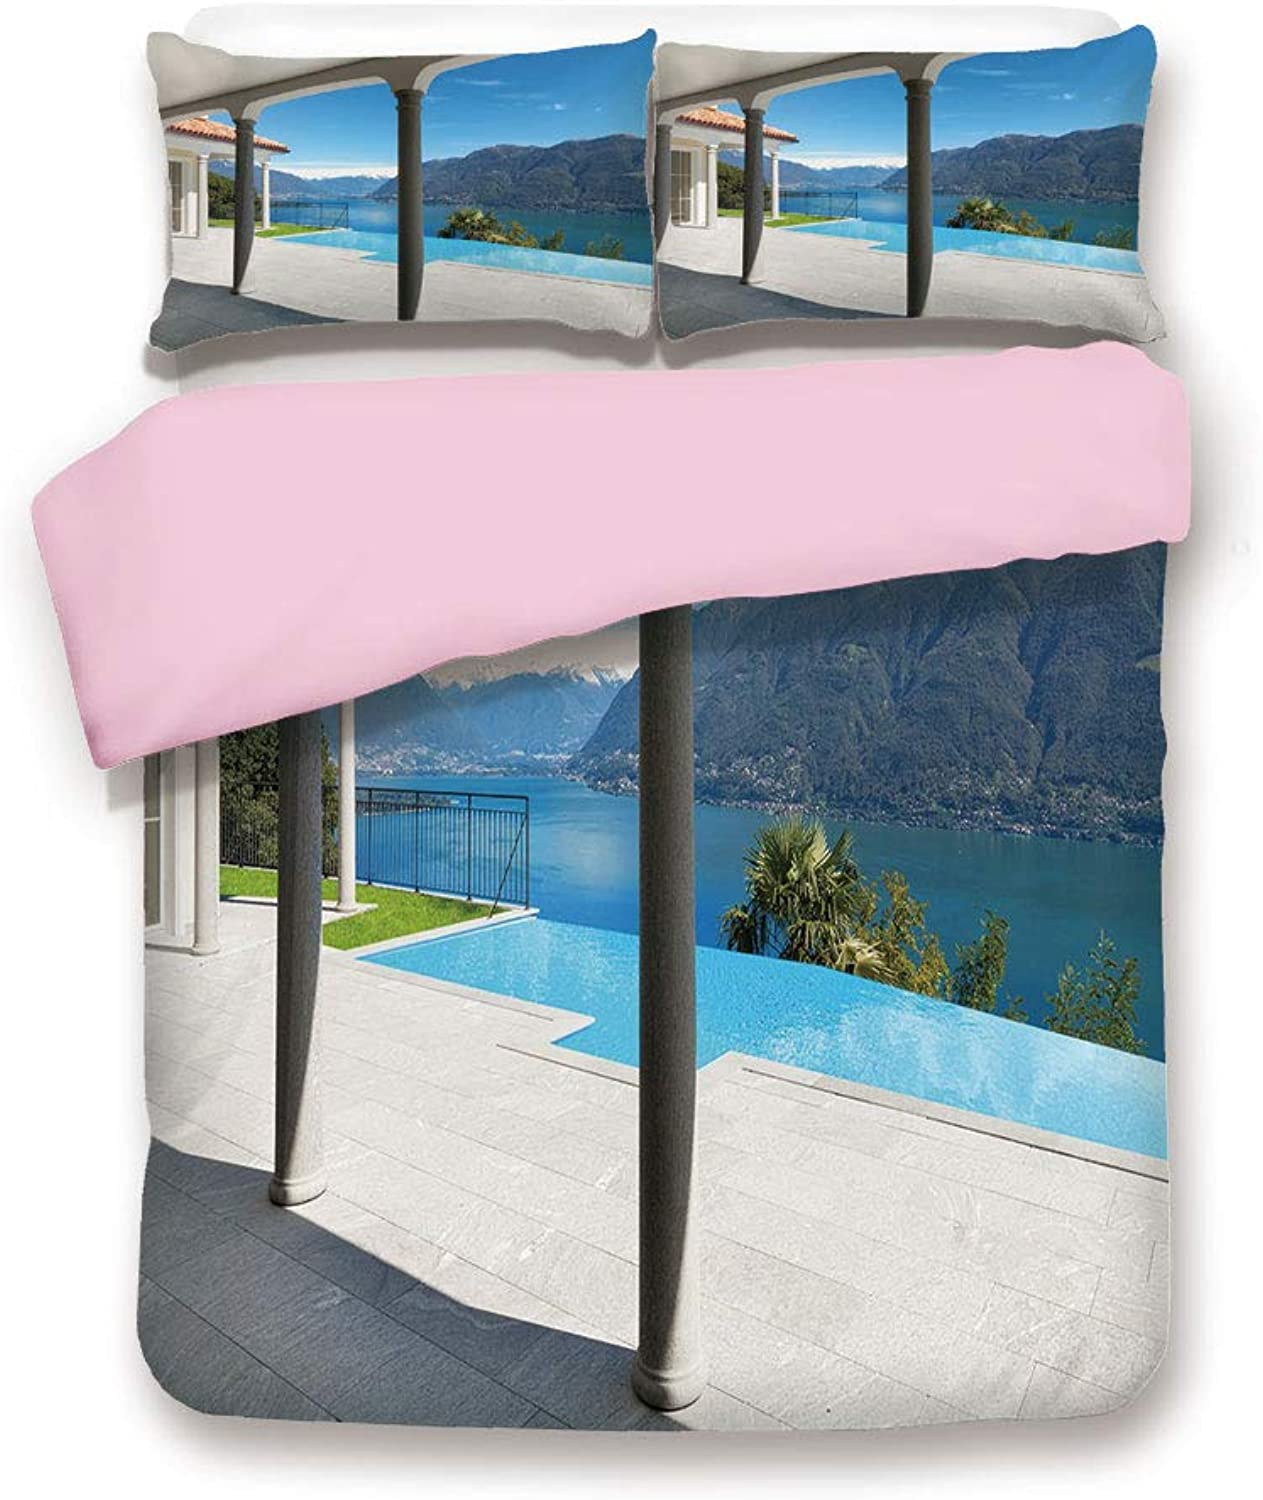 Pink Duvet Cover Set,King Size,Lake Maggiore View from The Terrace Balcony of House with Pool,Decorative 3 Piece Bedding Set with 2 Pillow Sham,Best Gift for Girls Women,Turquoise Grey and White